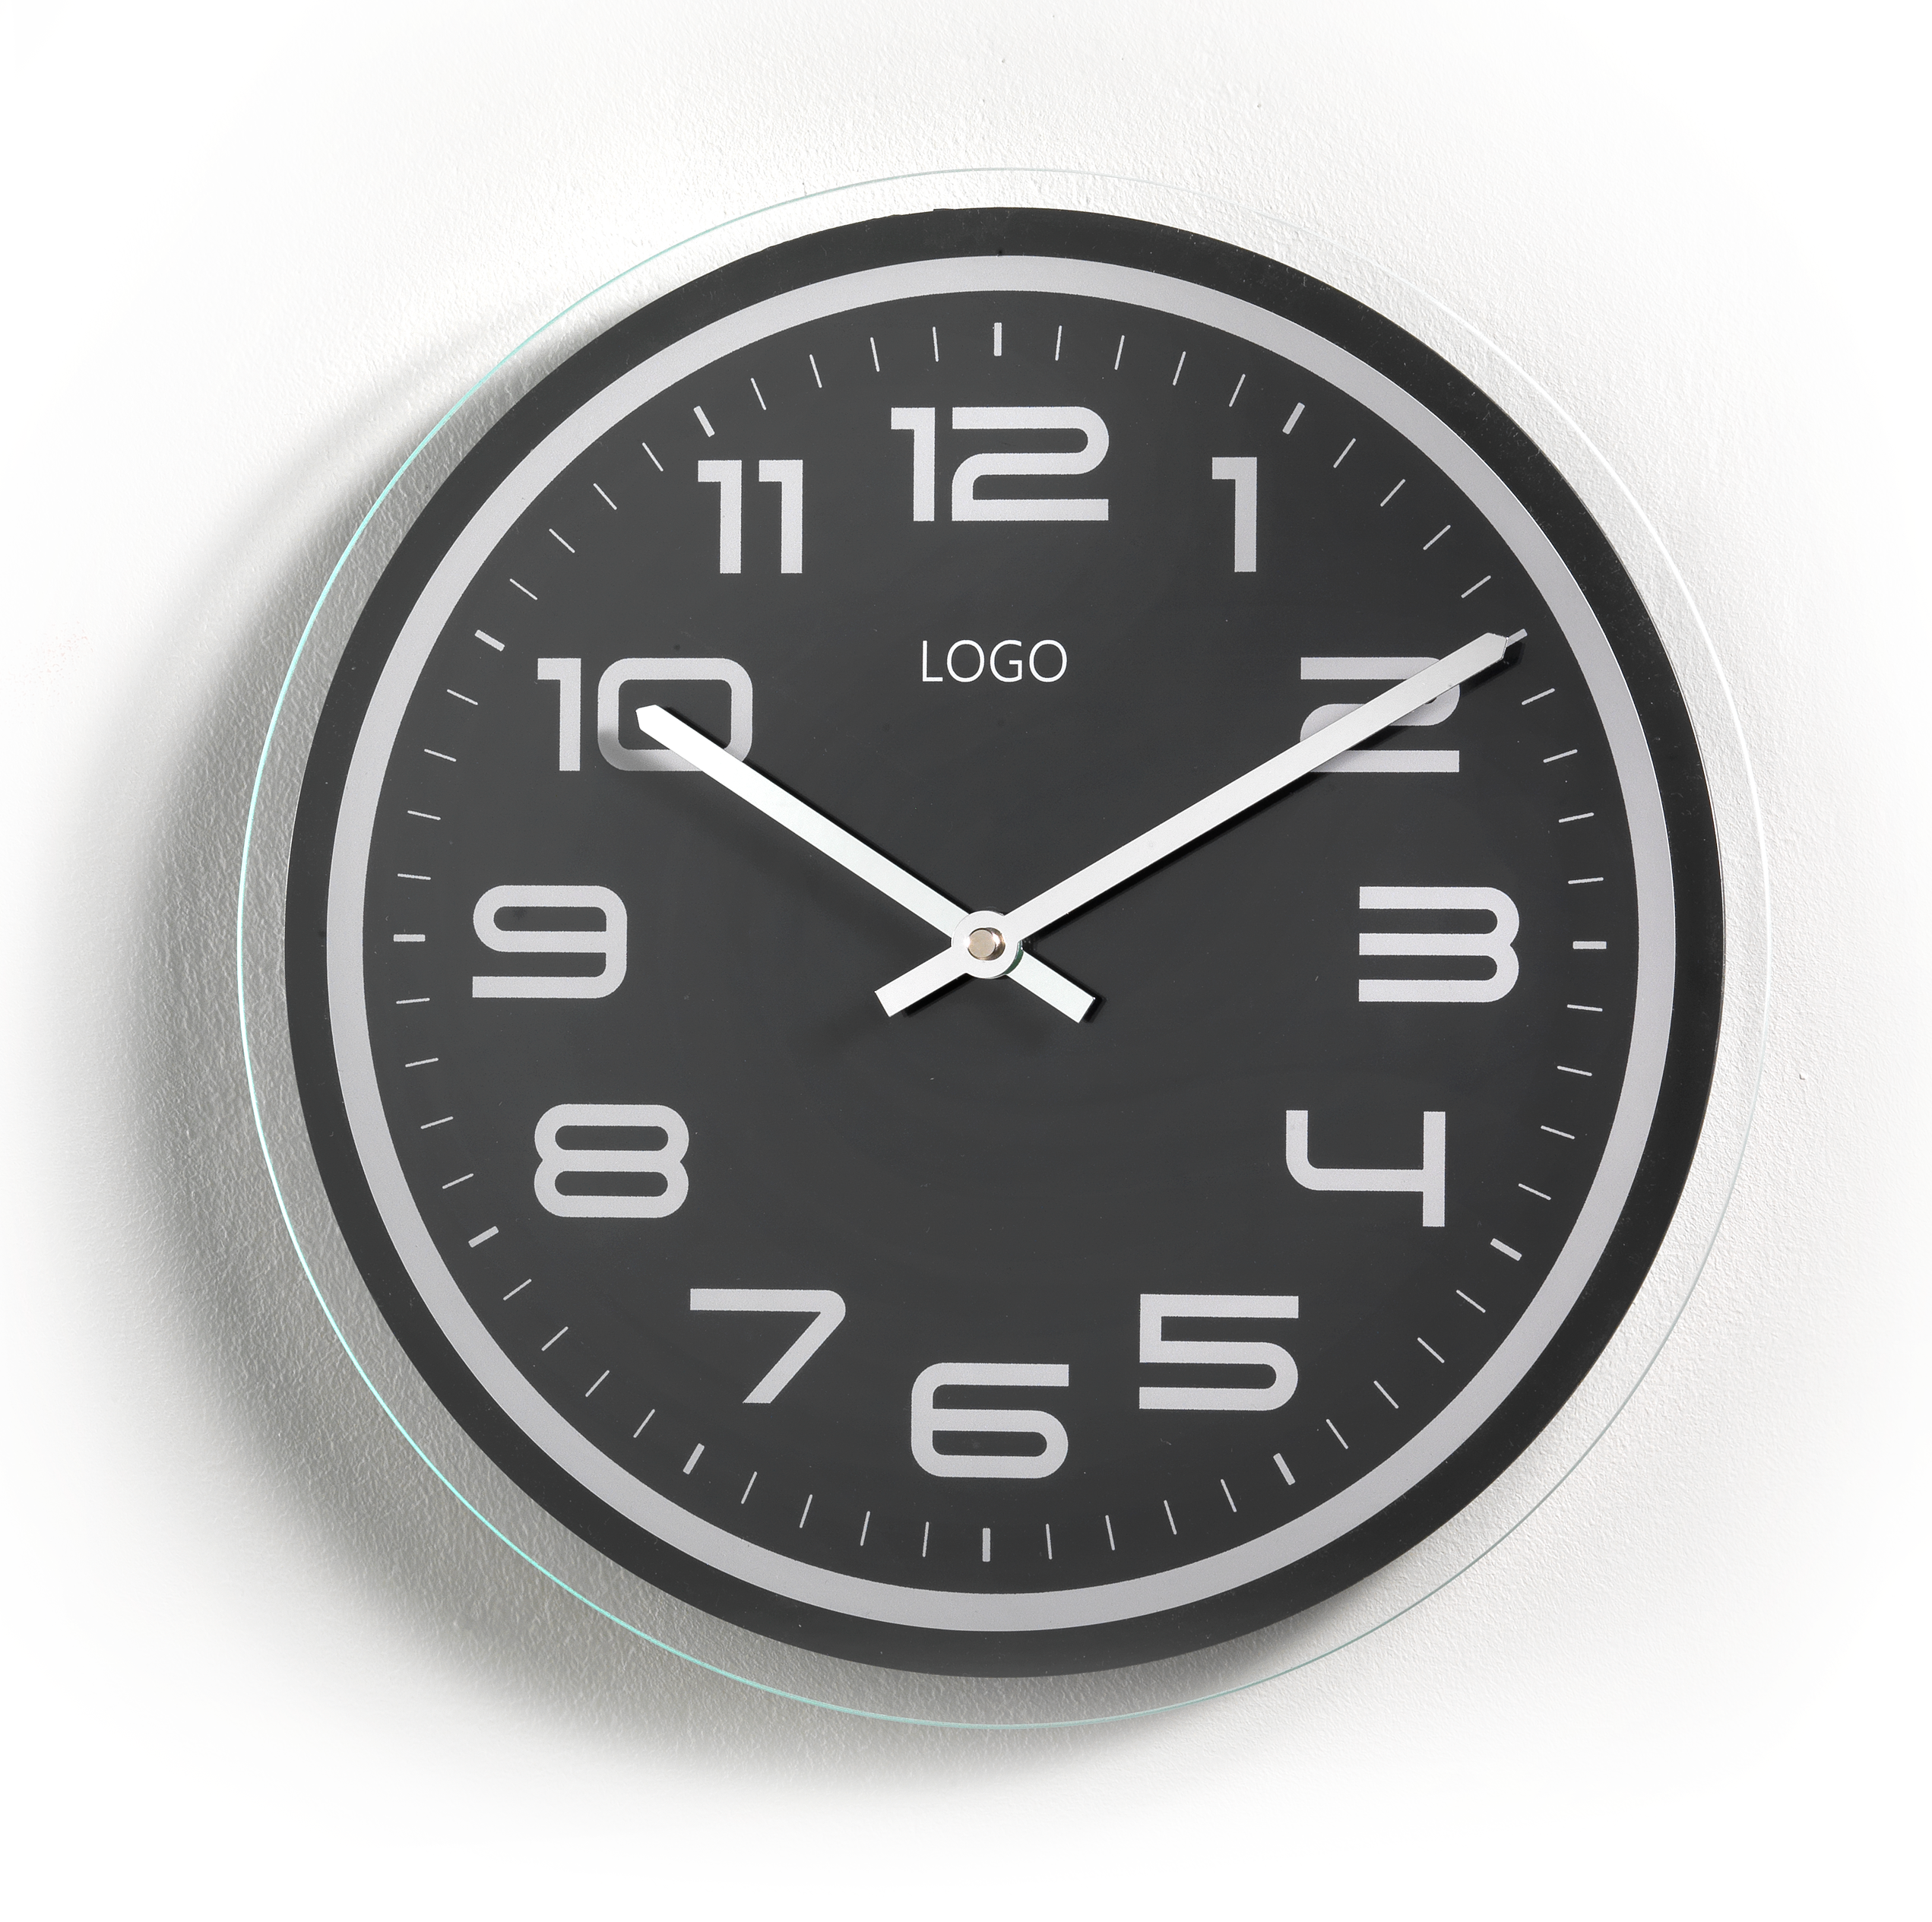 Exemple of Promotional wall clocks with metal case Promorologi Contini